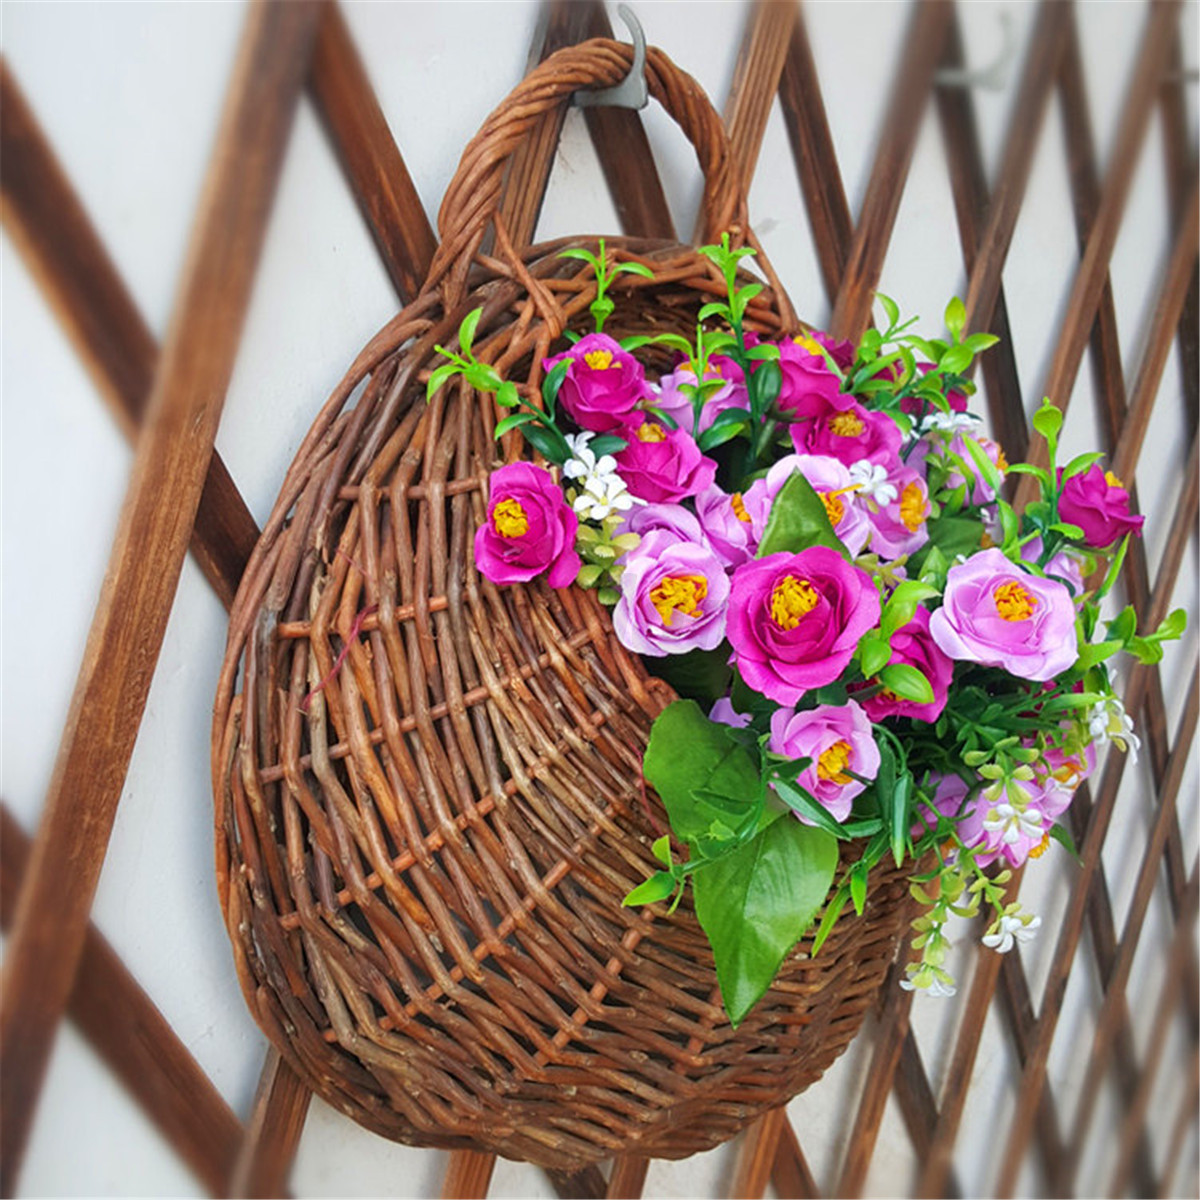 Wall Mount Flower Basket : Wall mounted plant flower hanging stand holder hydroponic